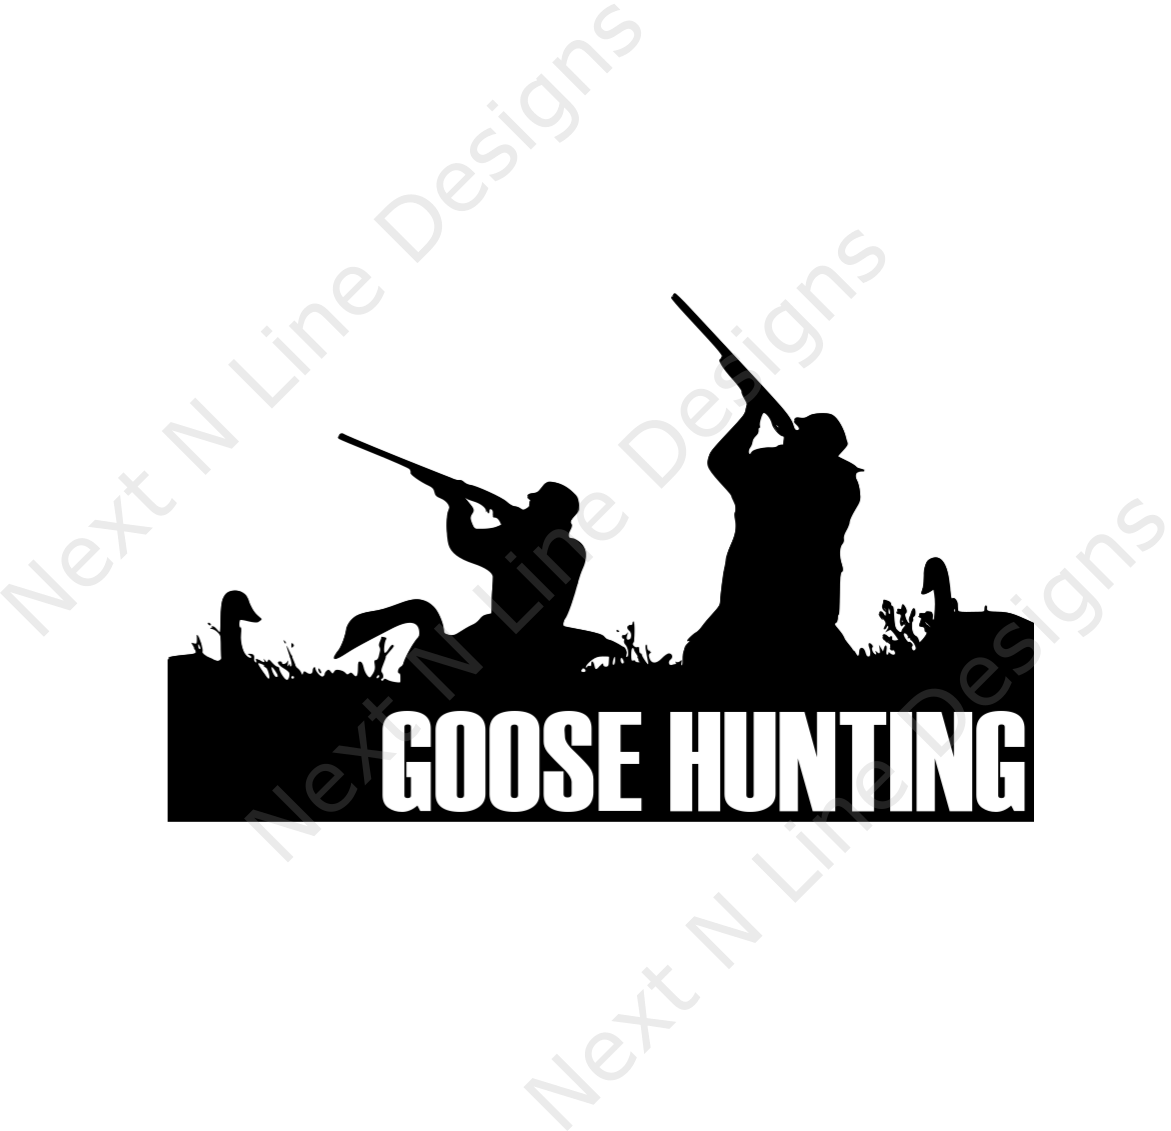 Hunter clipart pheasant shooting. Goose hunting decal products